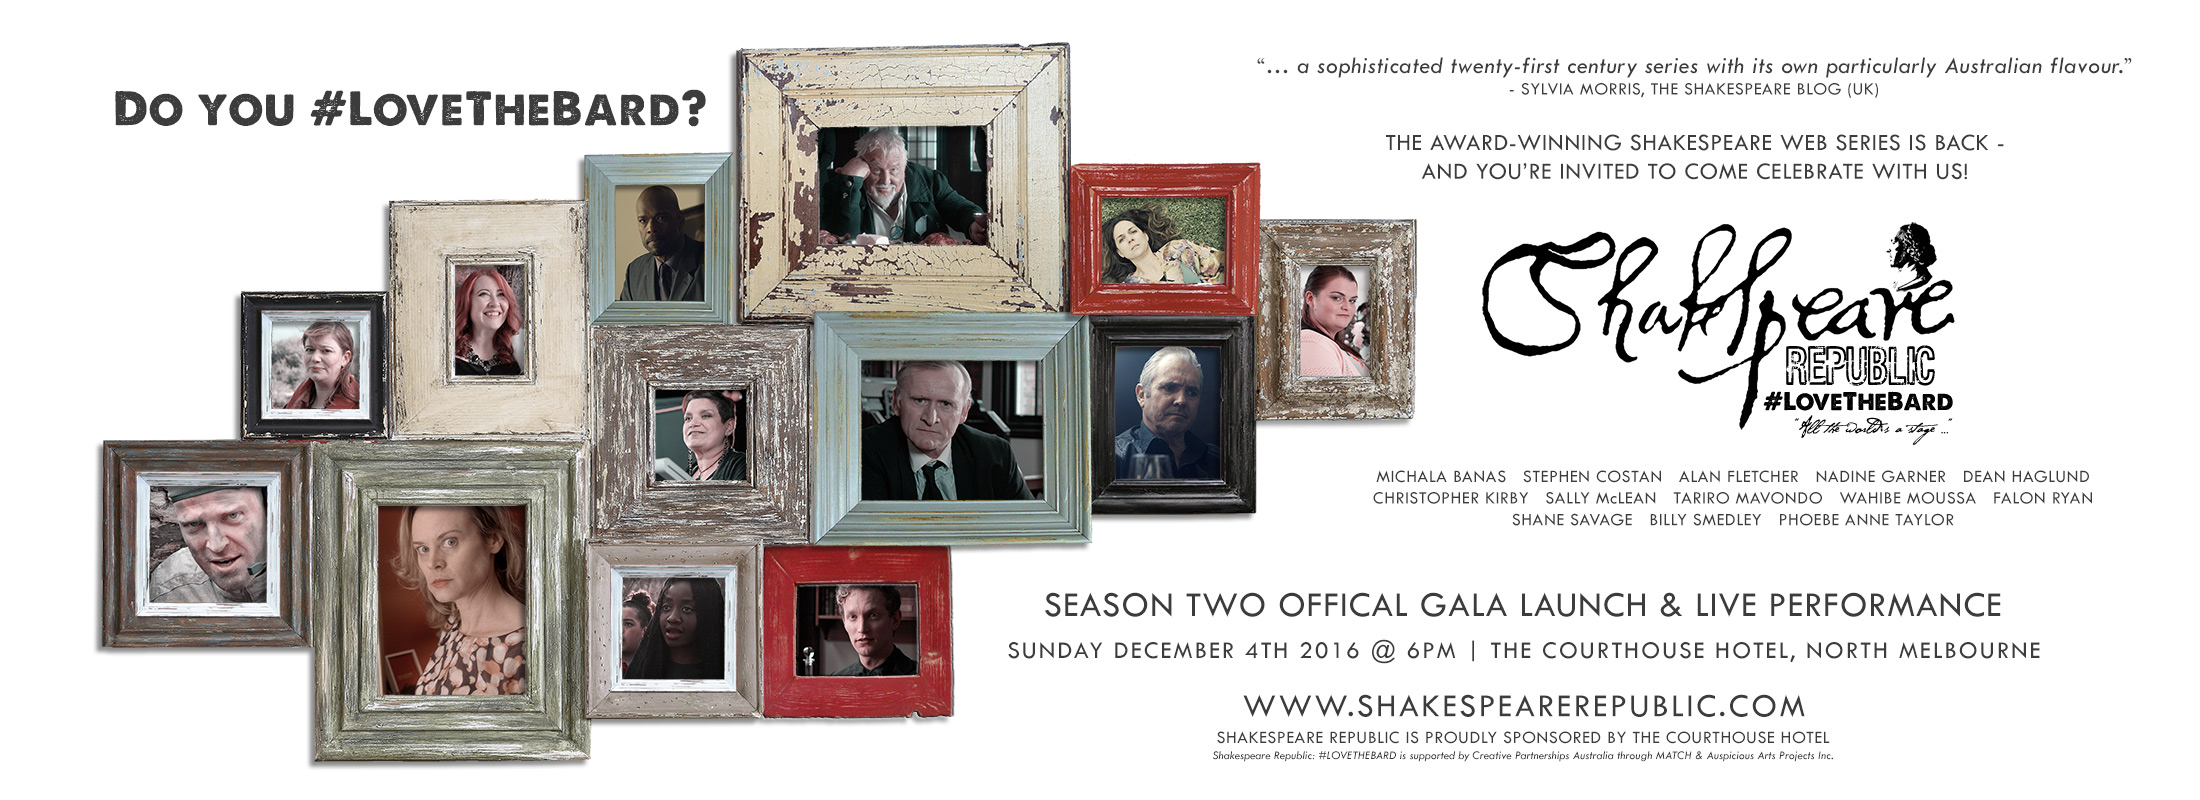 Shakespeare Republic #LoveTheBard Season Two Launch Tickets Released! #shakespeare #party